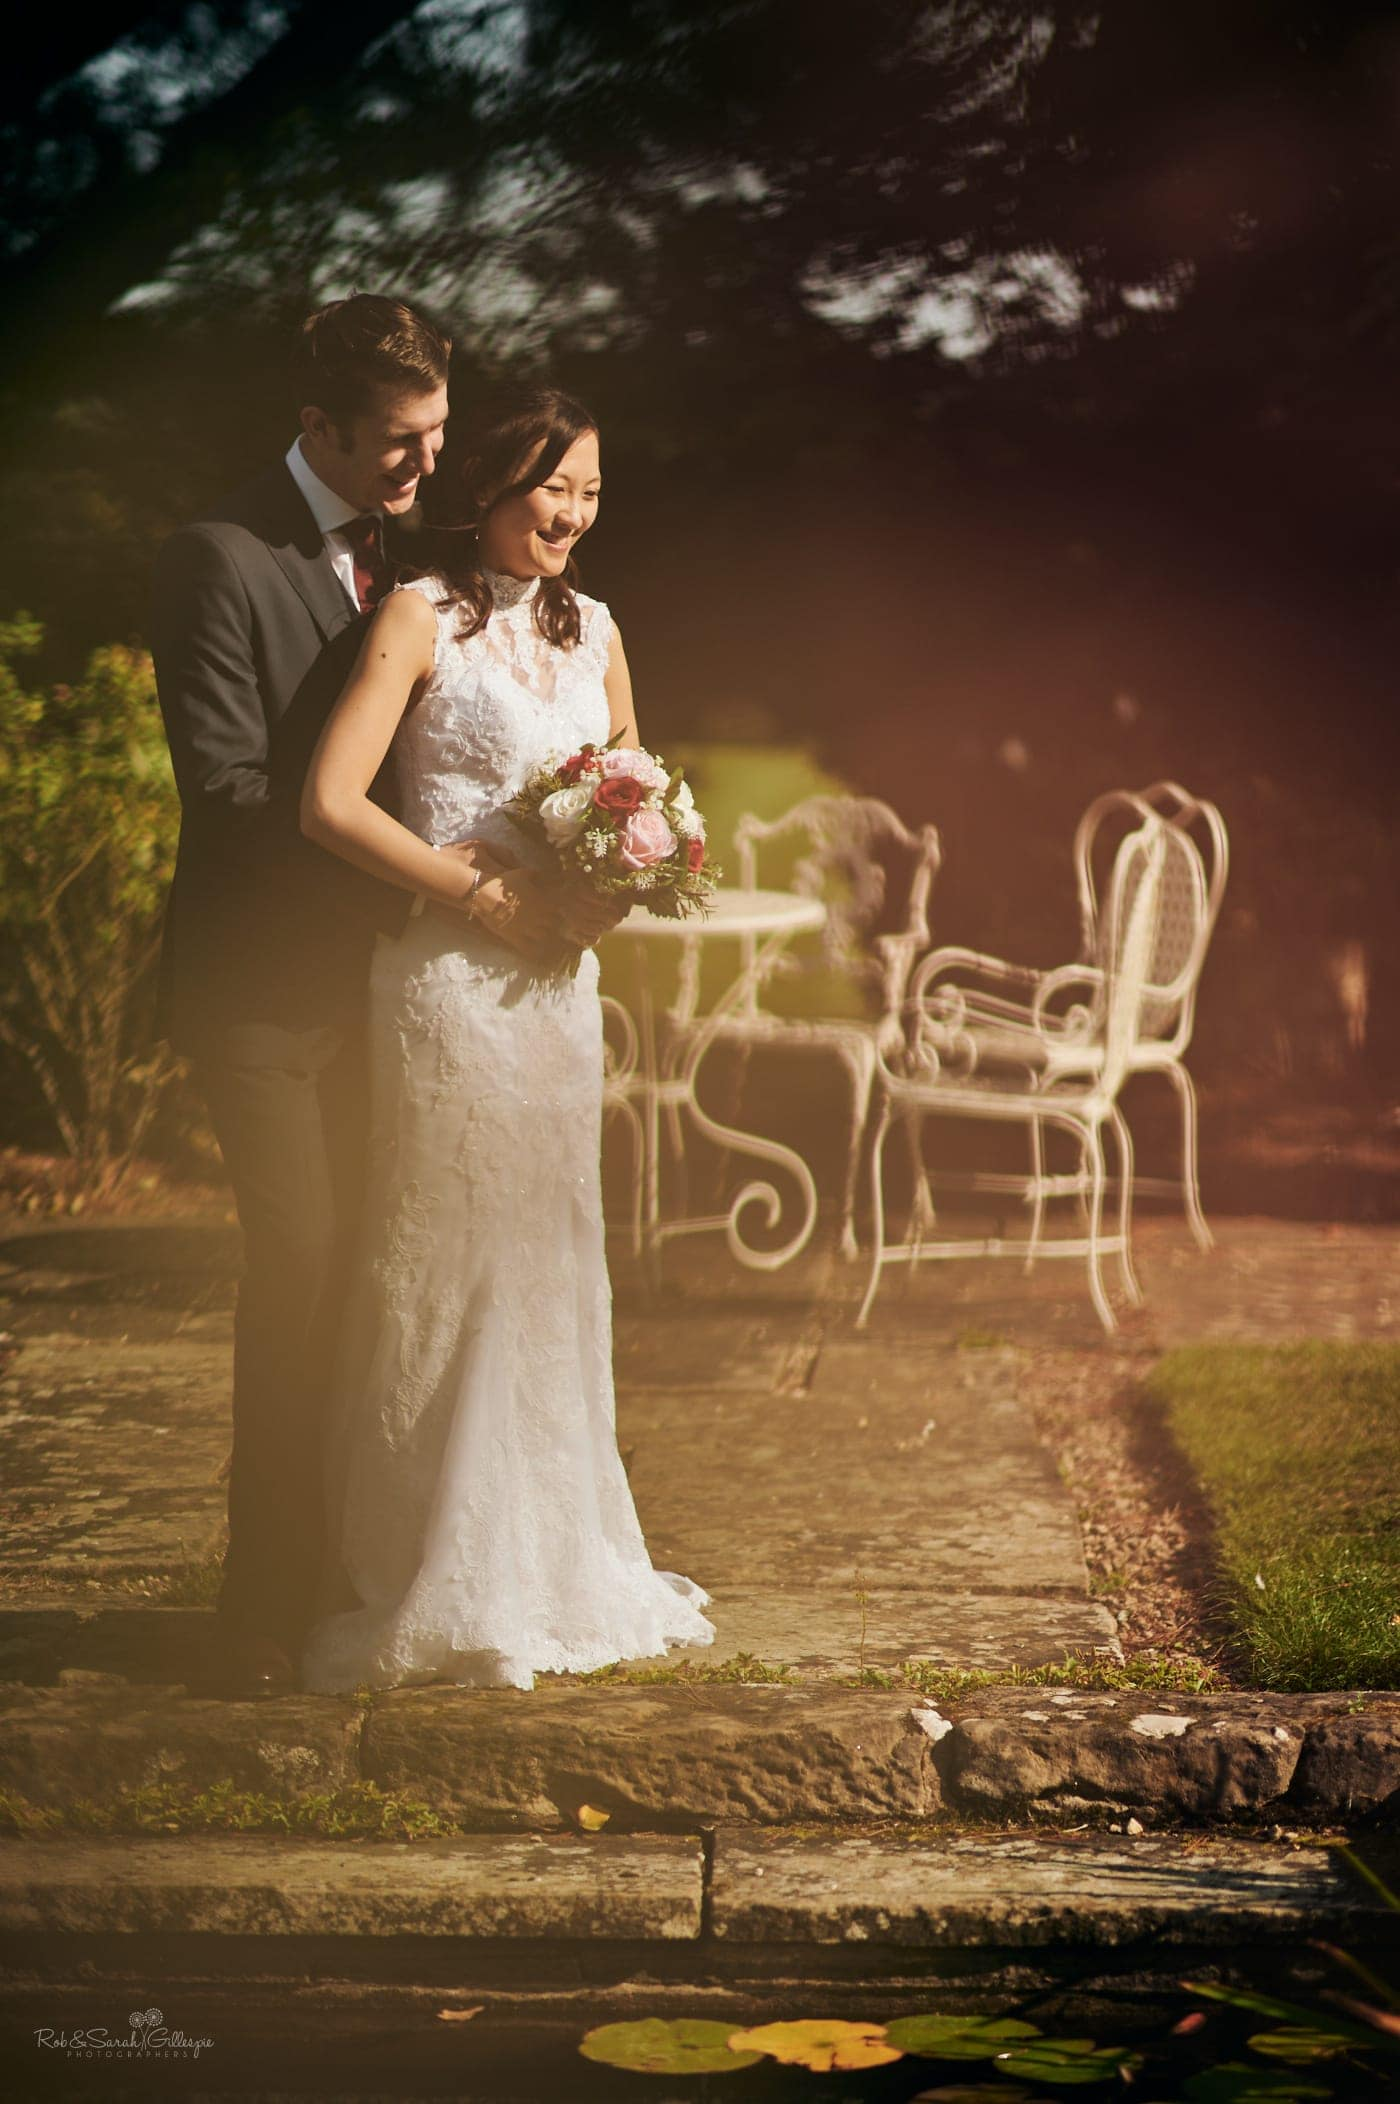 Bride and groom together in gardens at Mallory Court